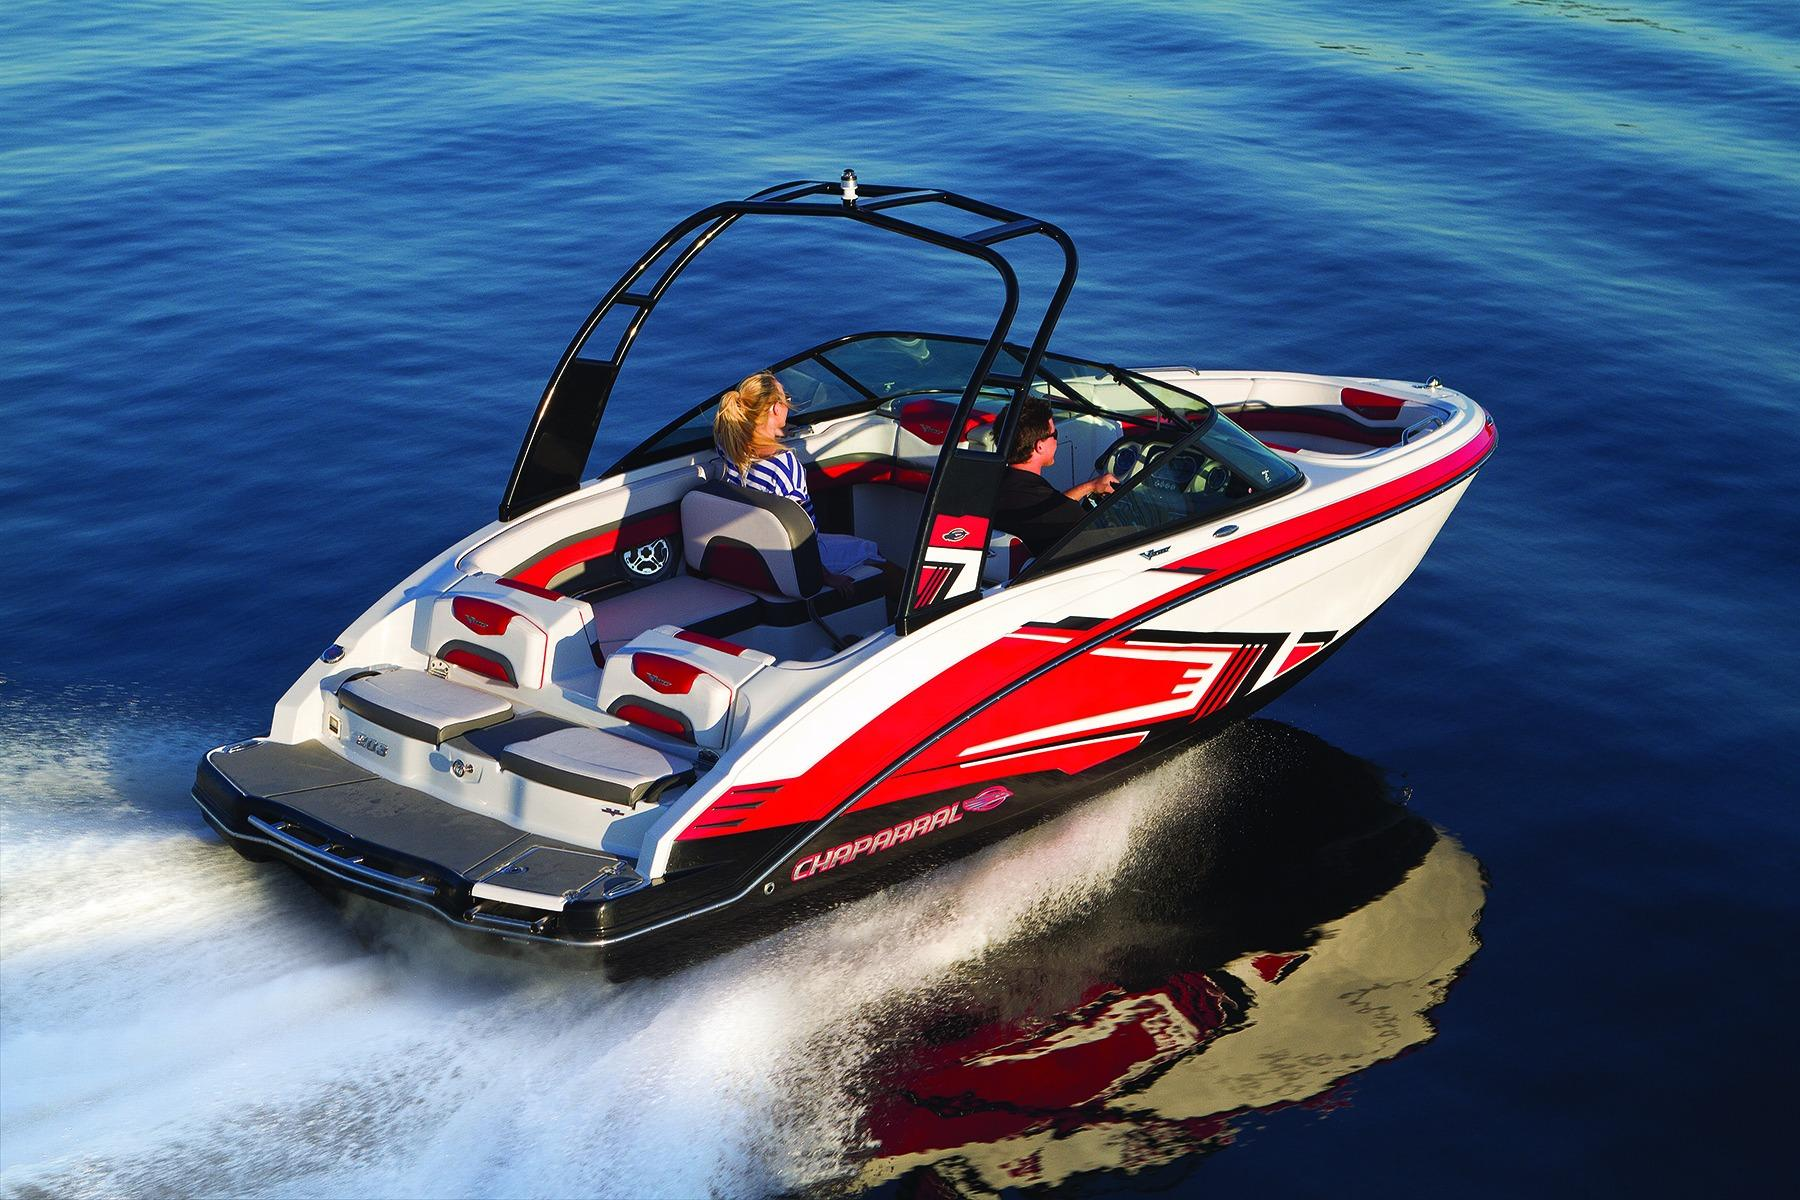 Williamstown (NJ) United States  city photos gallery : 2015 Chaparral 203 Vortex VRX Power Boat For Sale www.yachtworld.com